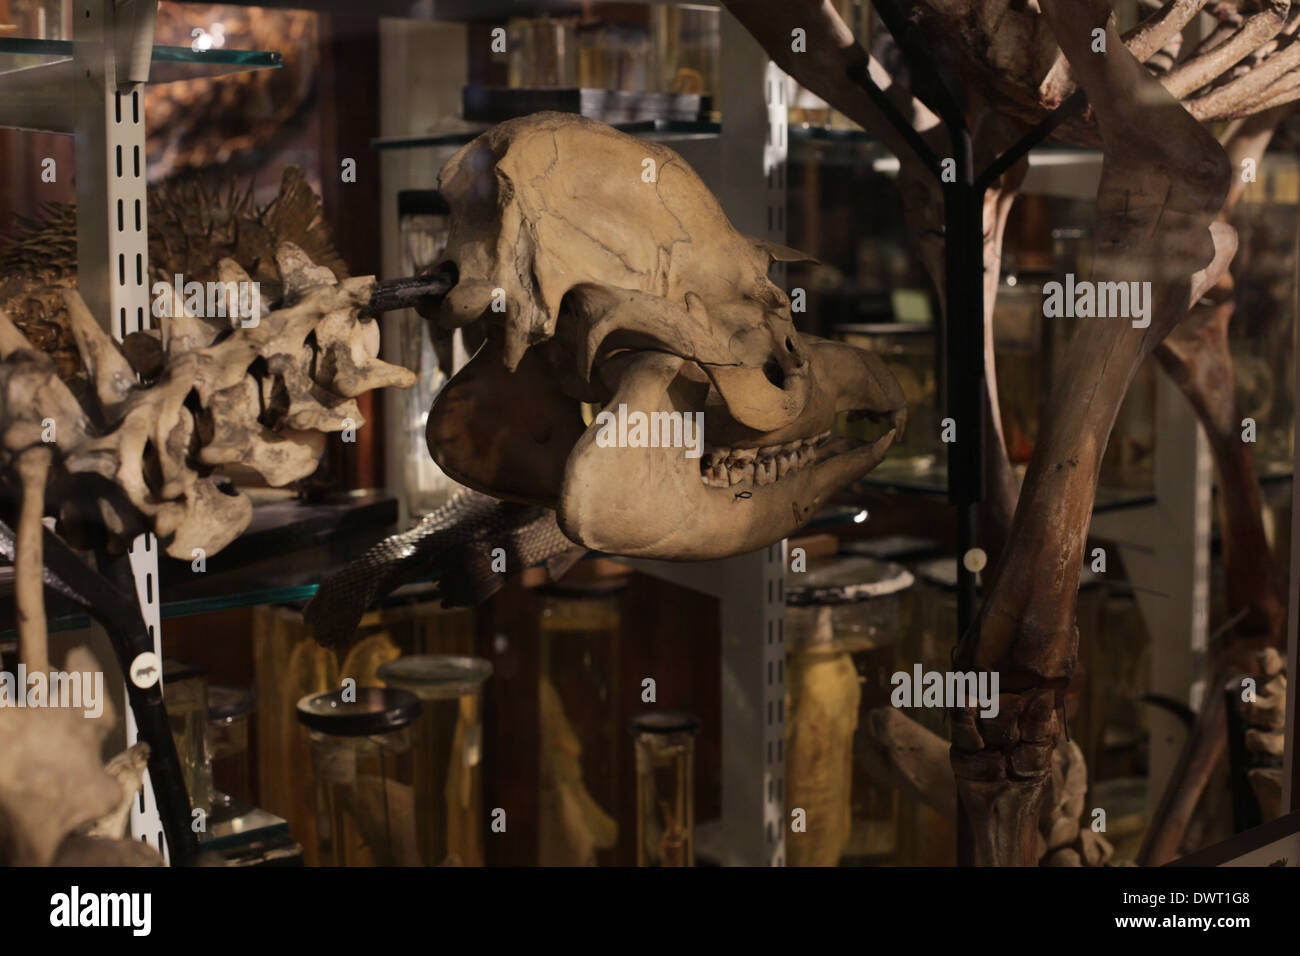 Grant Museum of Zoology and Comparative Anatomy, University College, London (UCL) - Stock Image